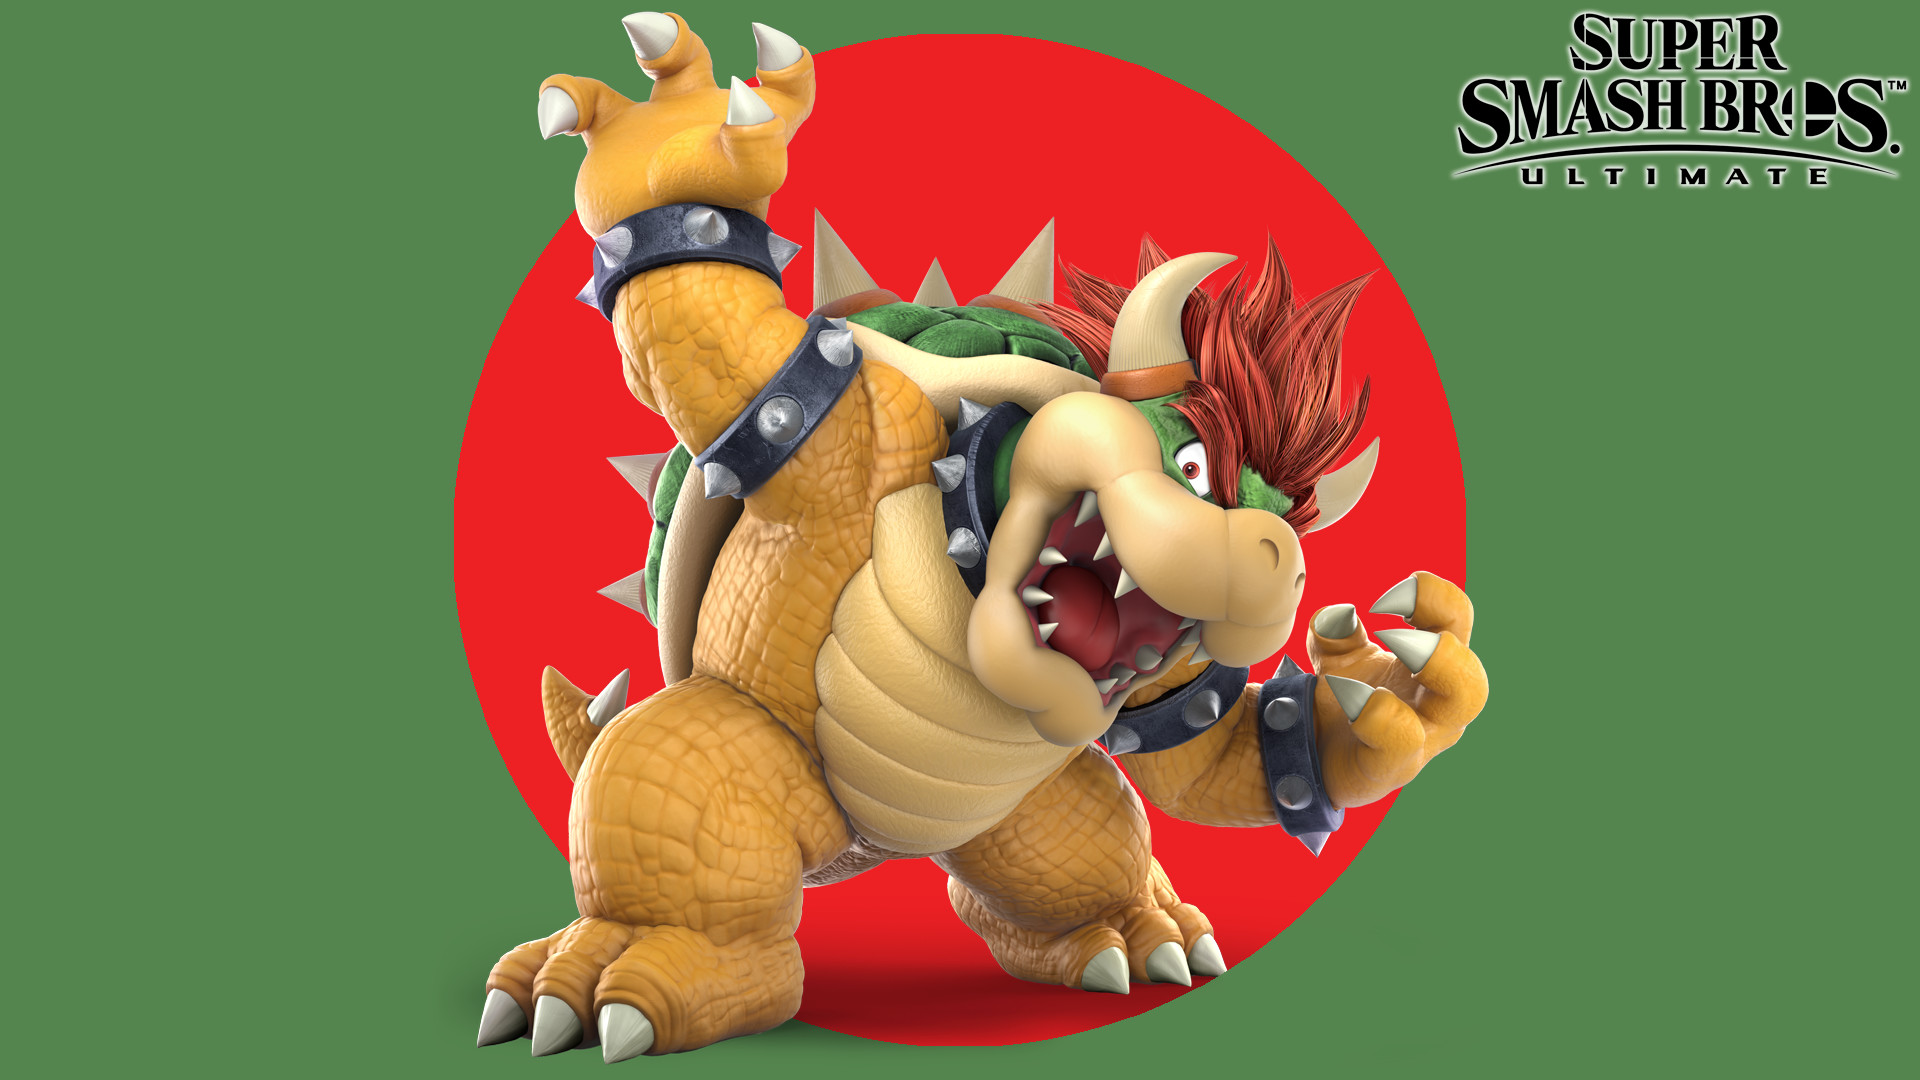 Bowser Wallpapers Hd Wallpaper Collections 4kwallpaper Wiki